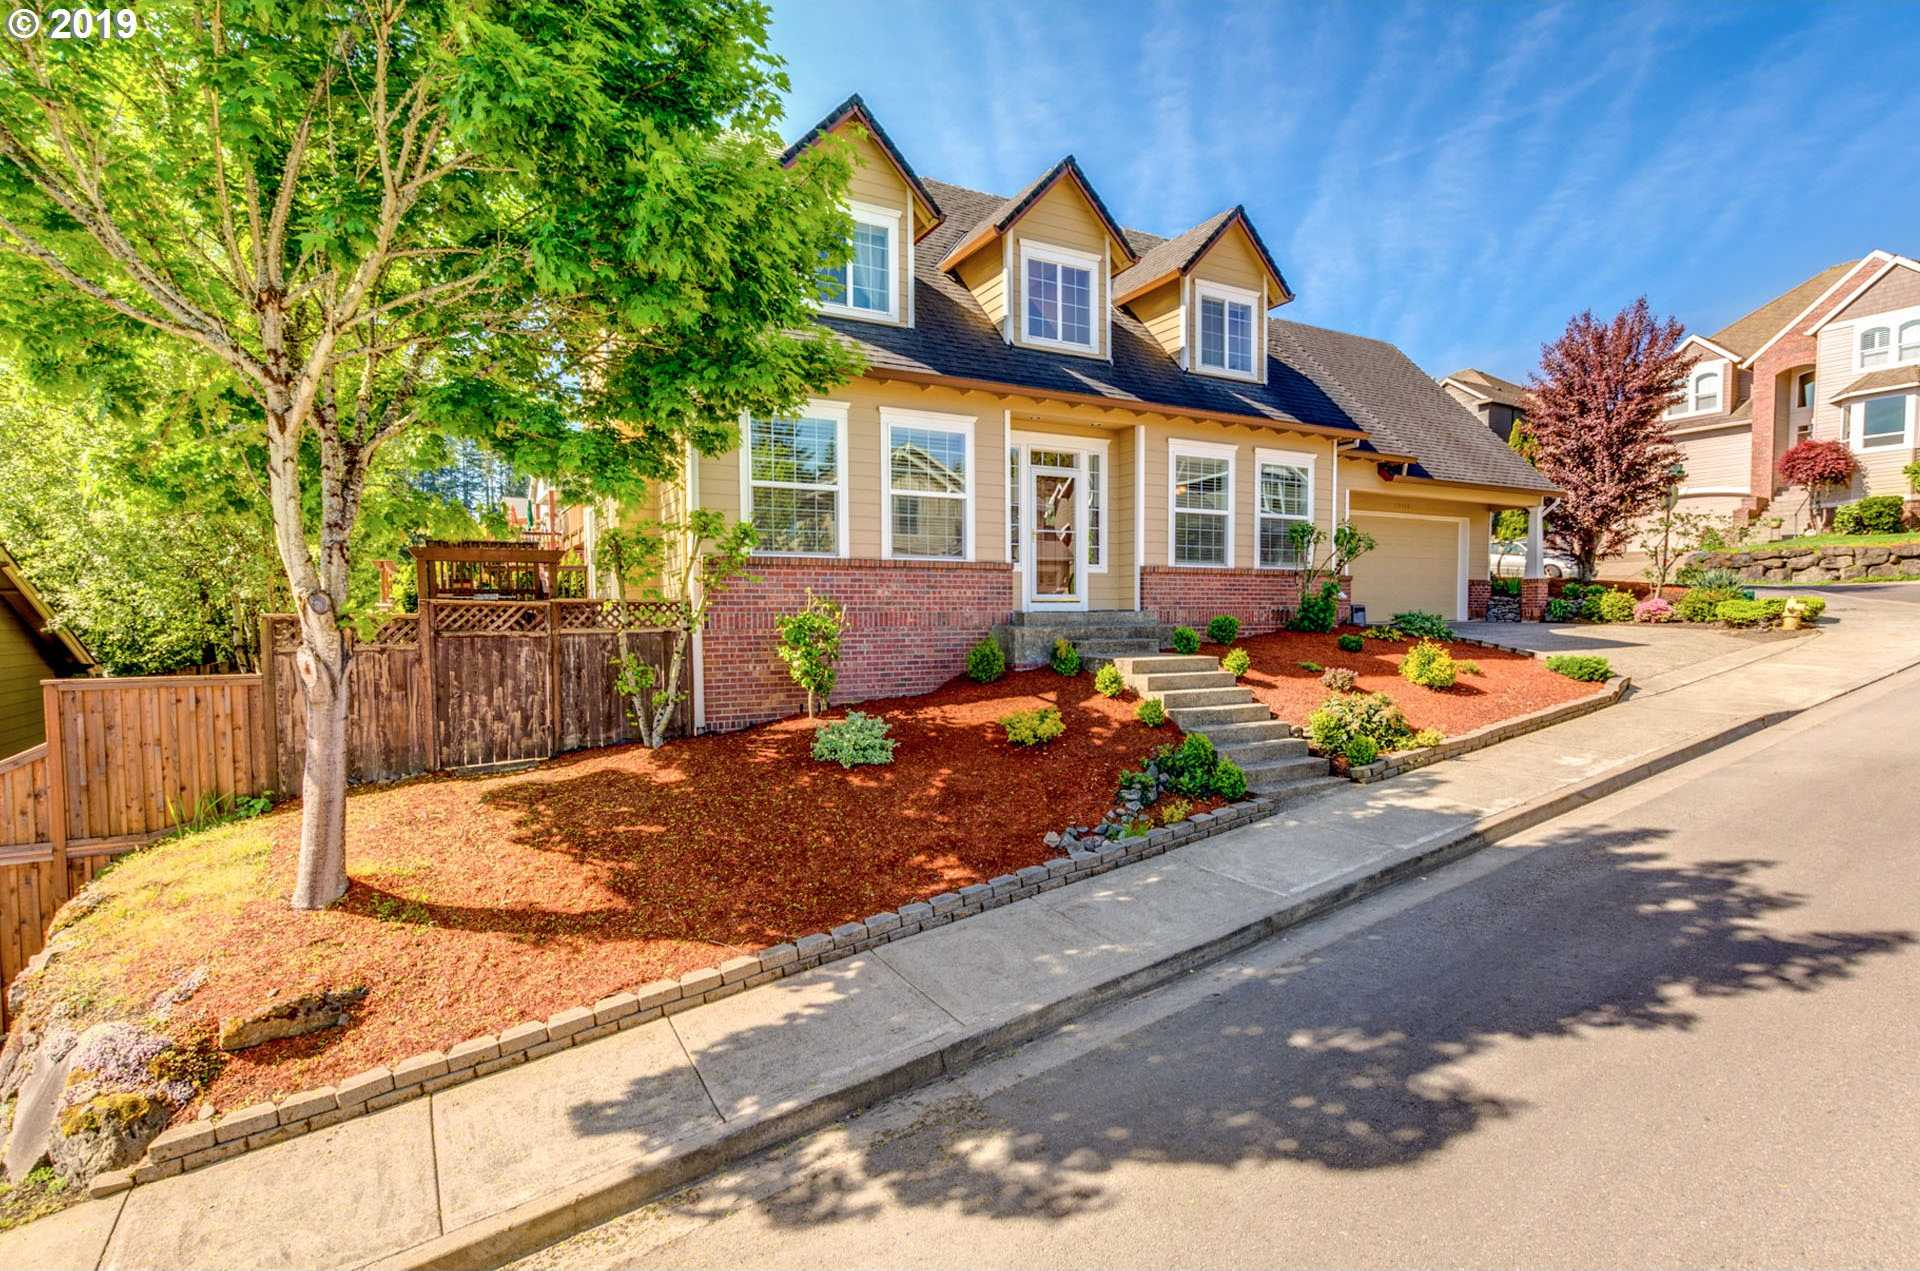 $529,000 - 5Br/3Ba -  for Sale in Bull Mountain, Tigard